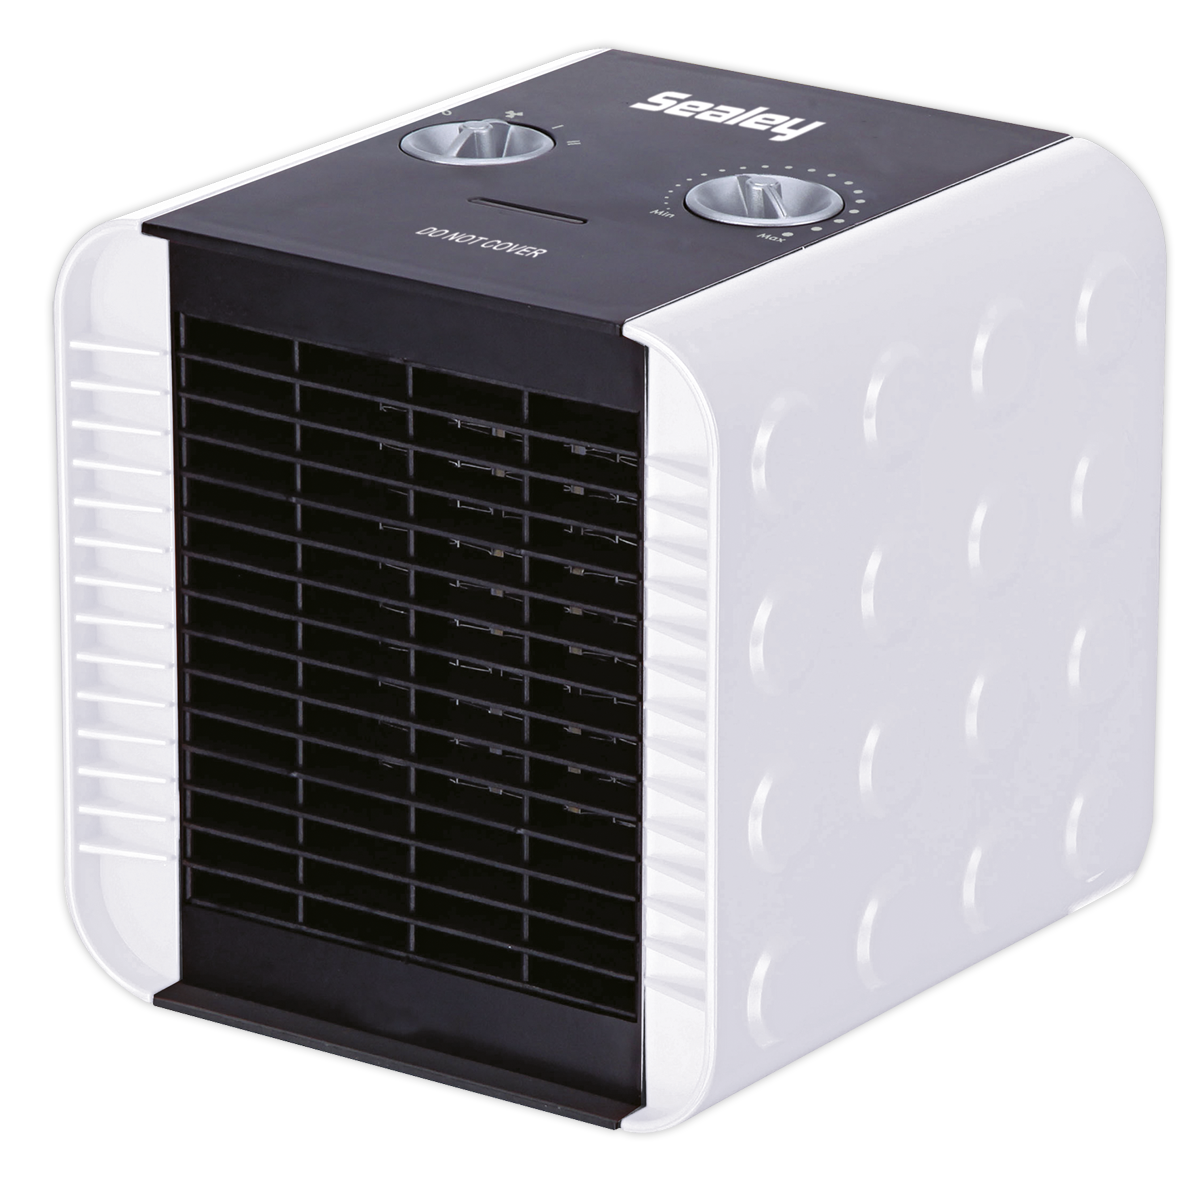 Ceramic Fan Heater 1400W/230V 2 Heat Settings